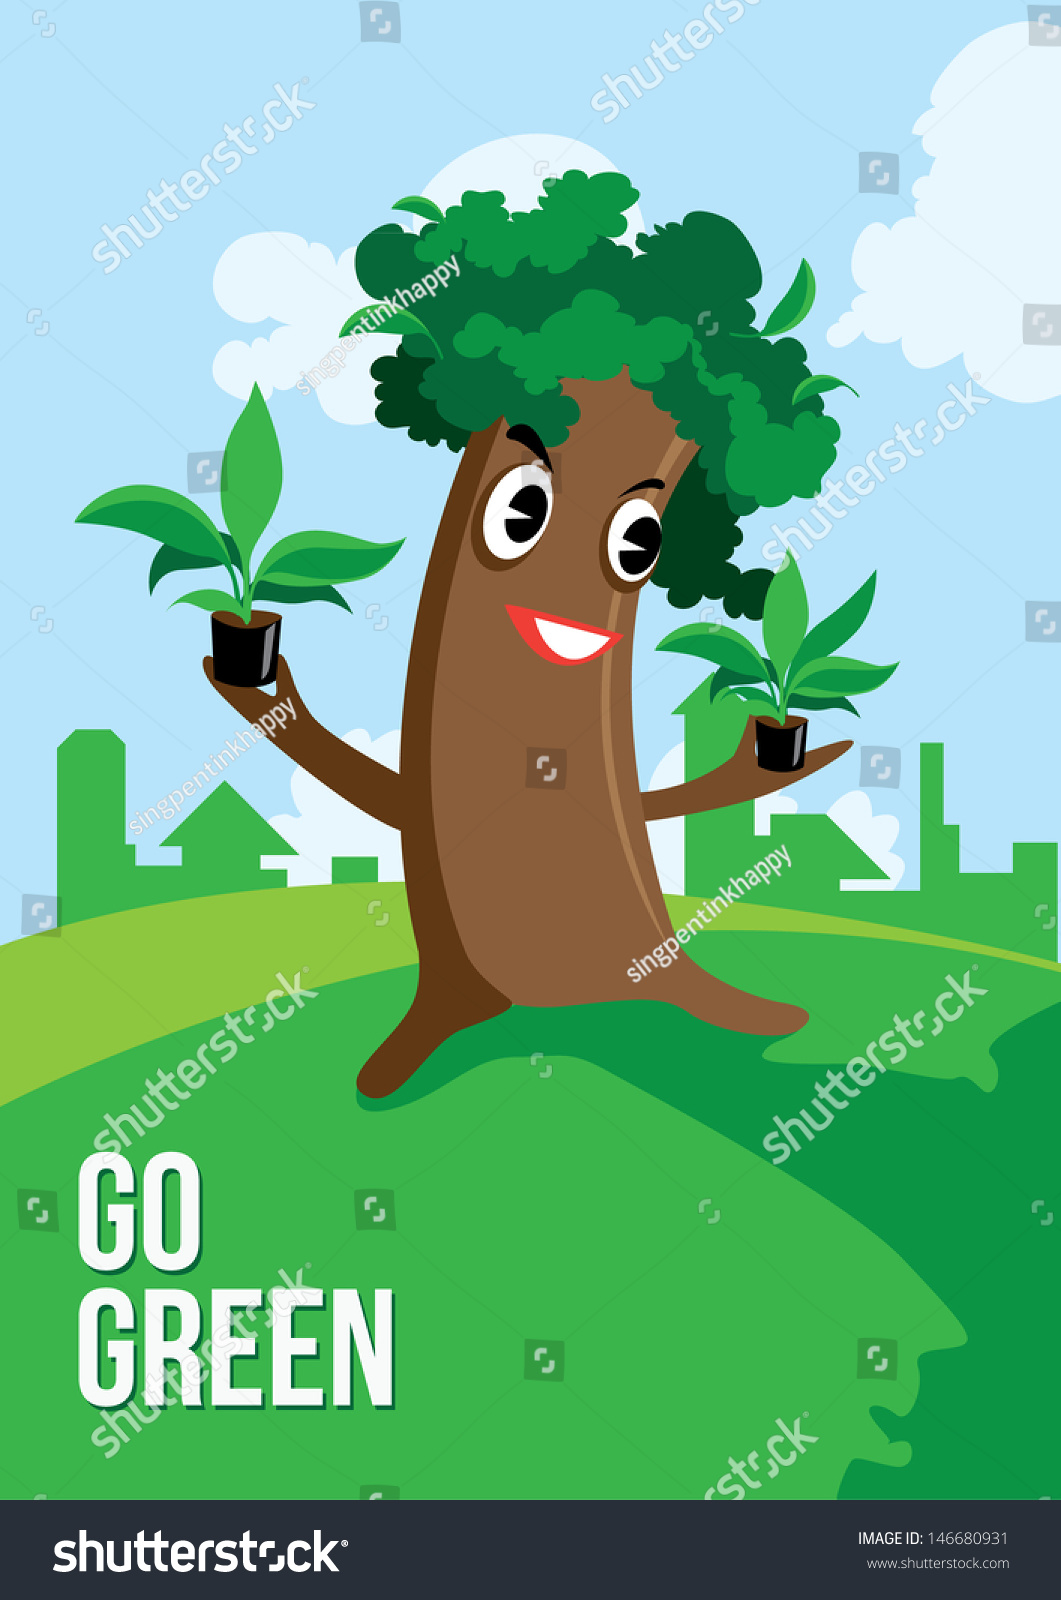 Go Green Cartoon Tree Poster Stock Vector 146680931 ...